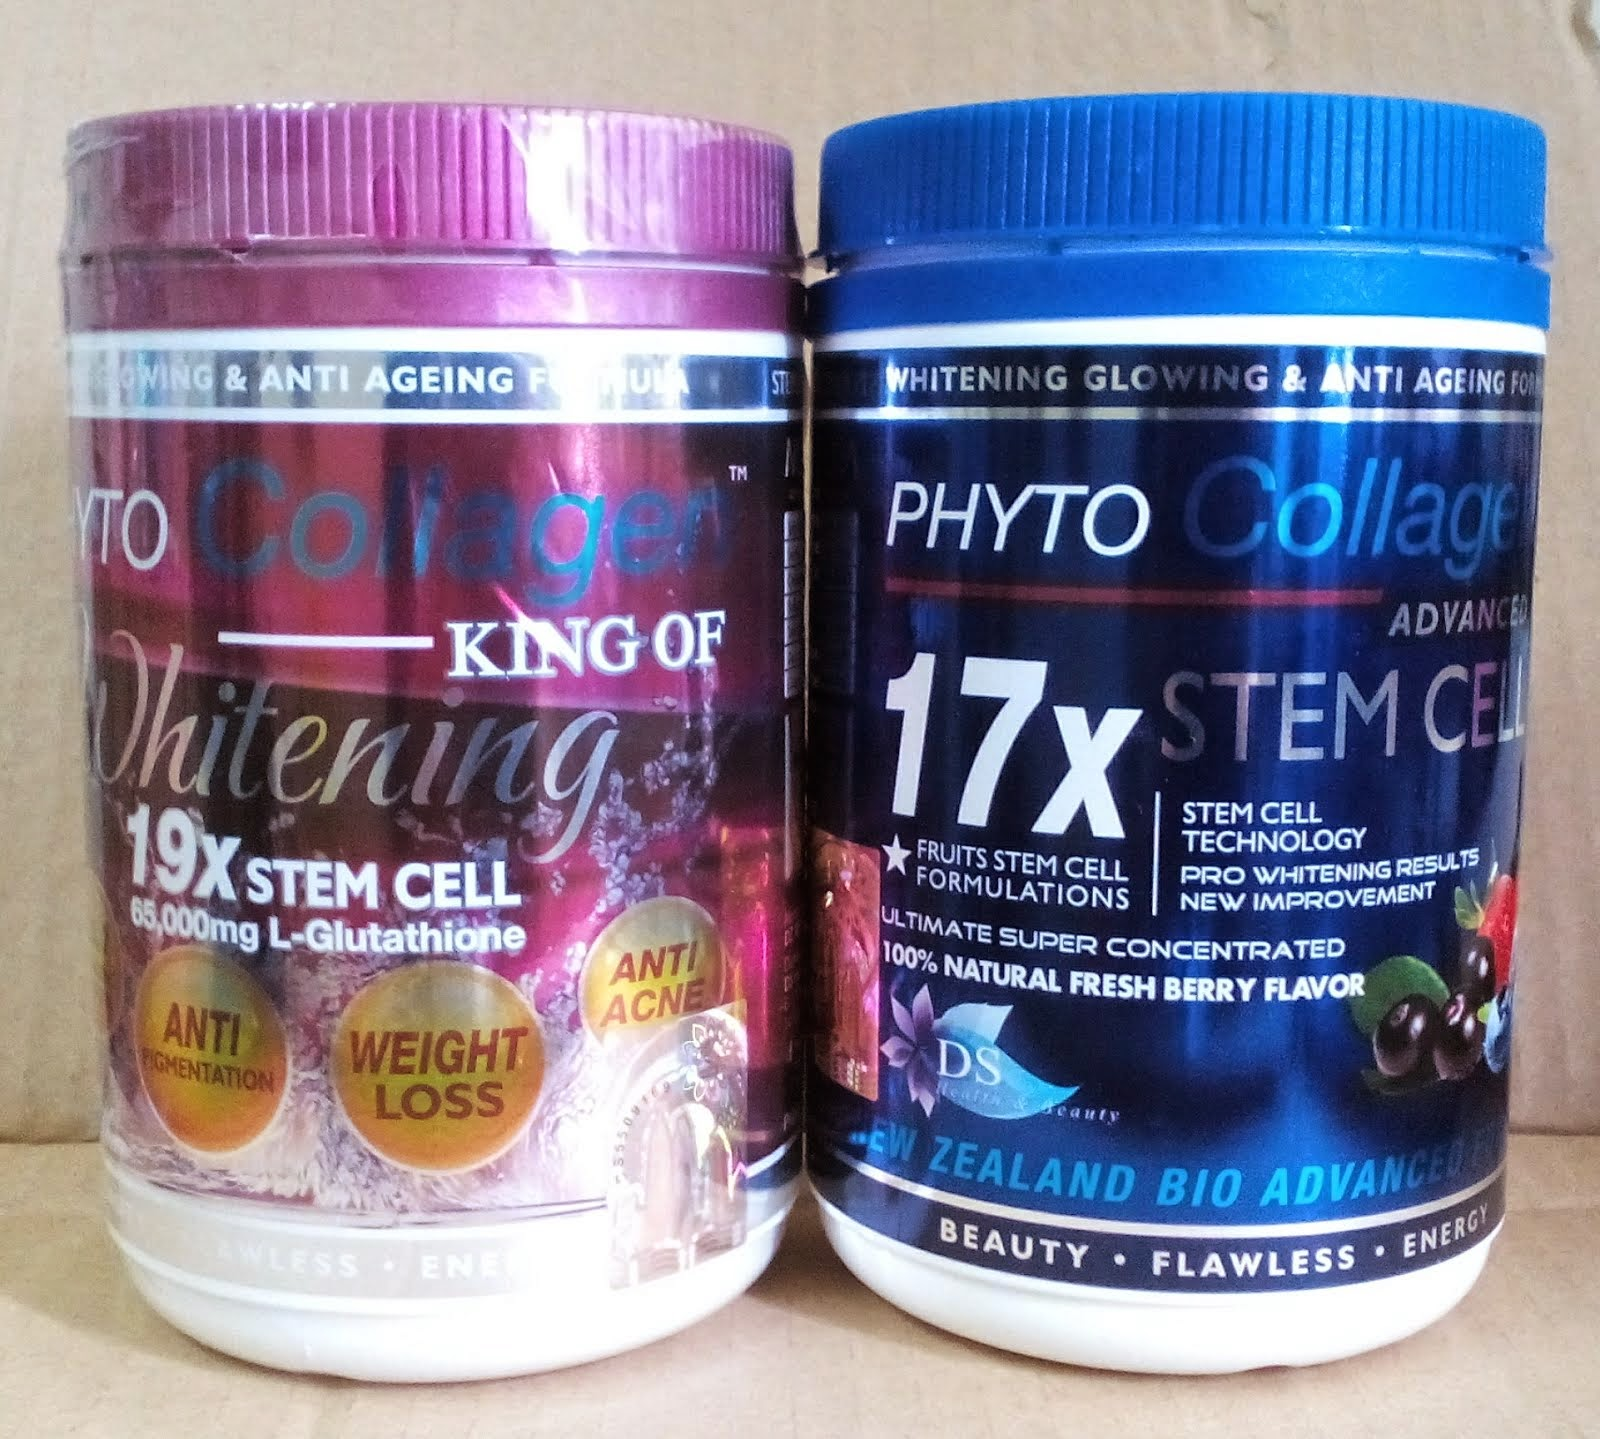 PHYTOCOLLAGEN